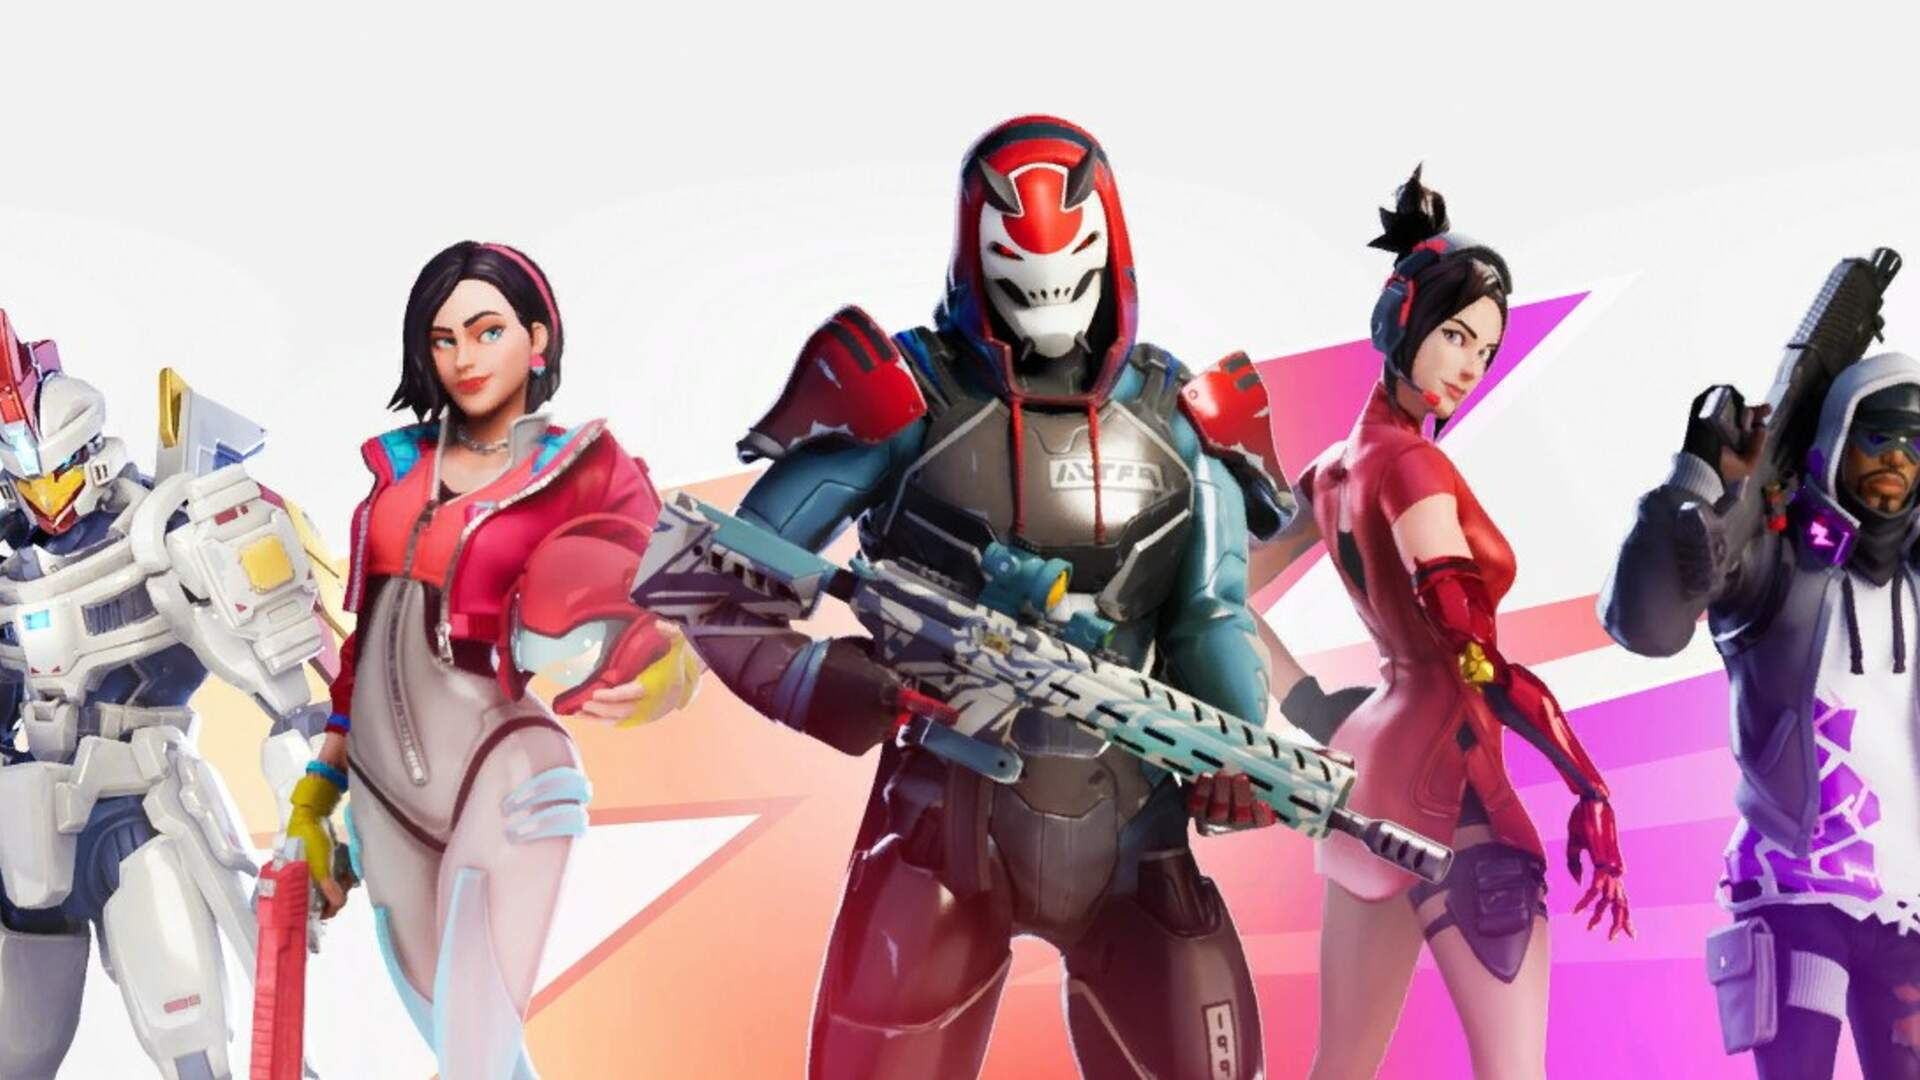 Fortnite Week 1 Challenges - How to Complete All Season 9, Week 1 Battle Pass Challenges